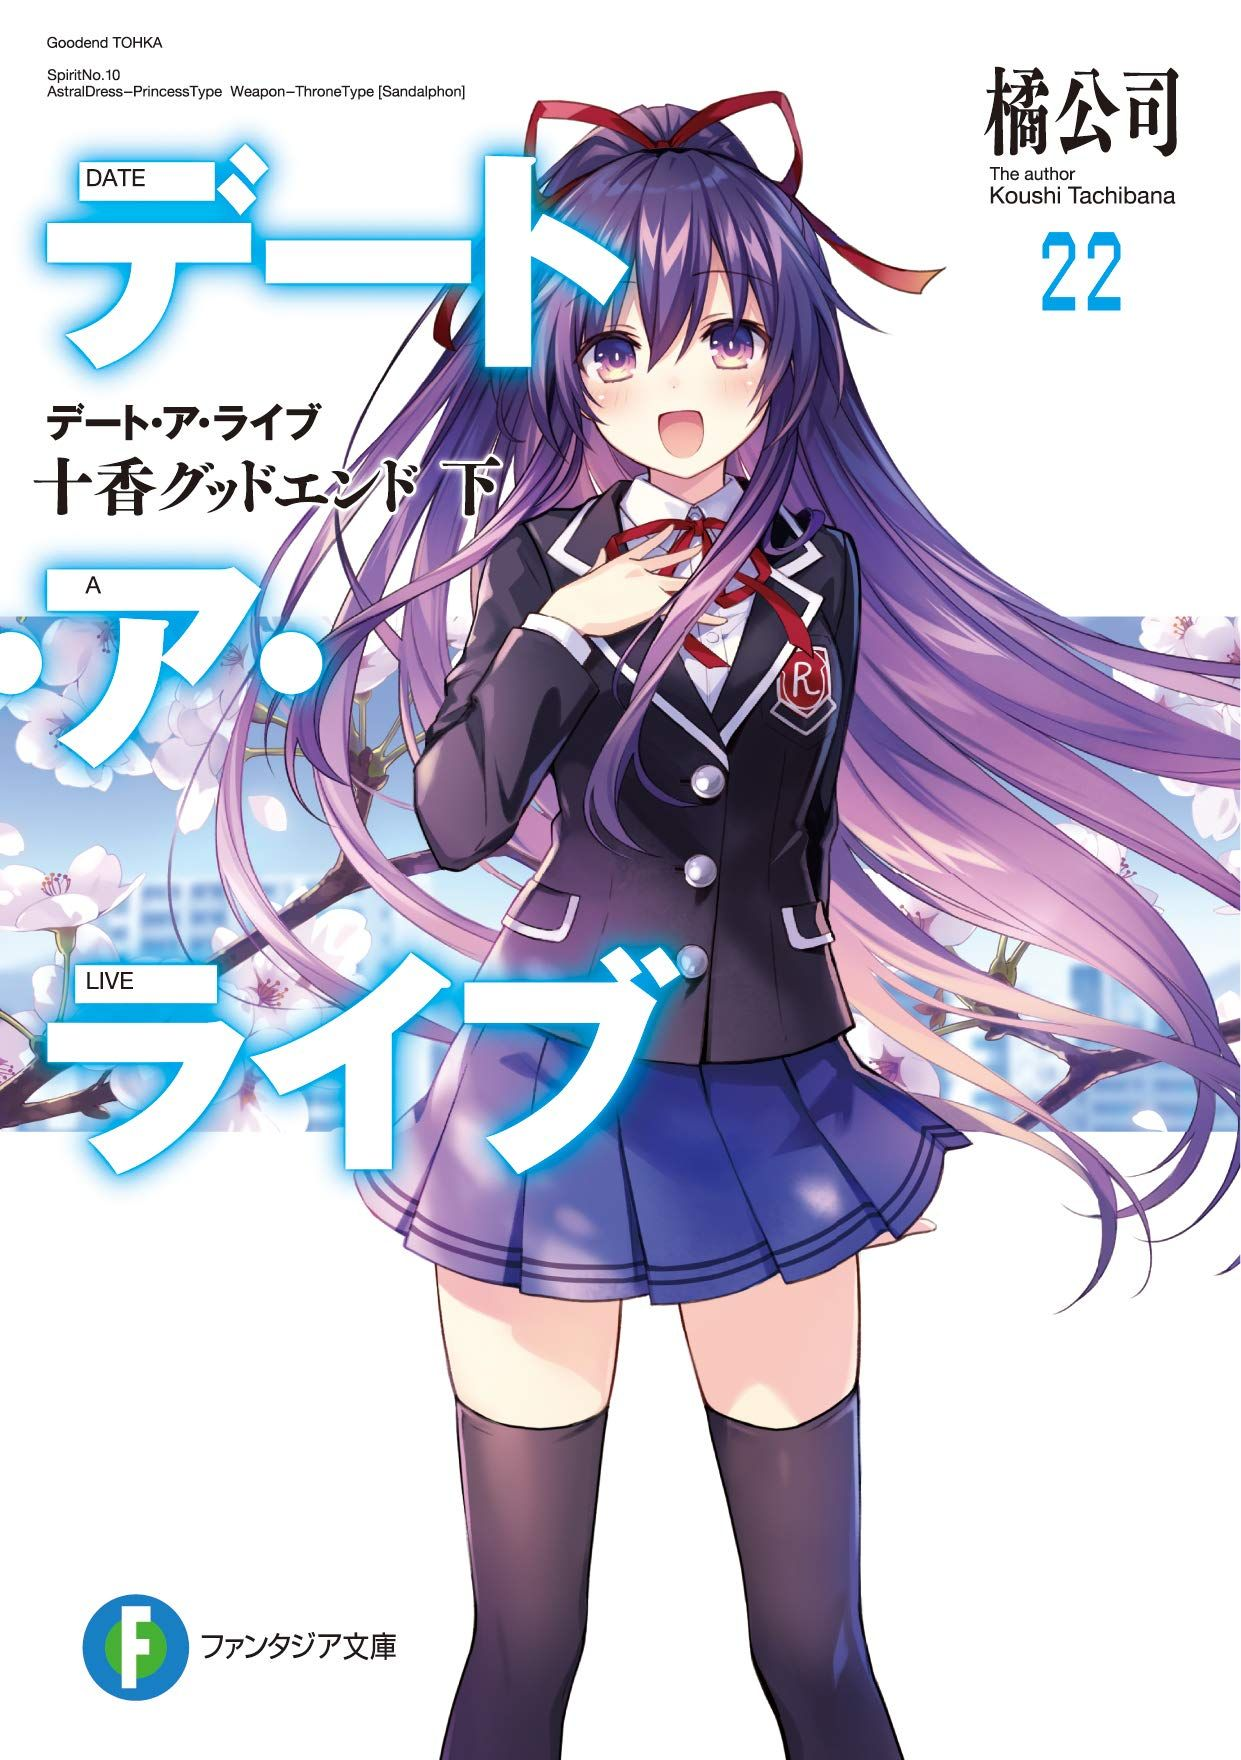 Japan Top 10 Weekly Light Novel Ranking March 16, 2020